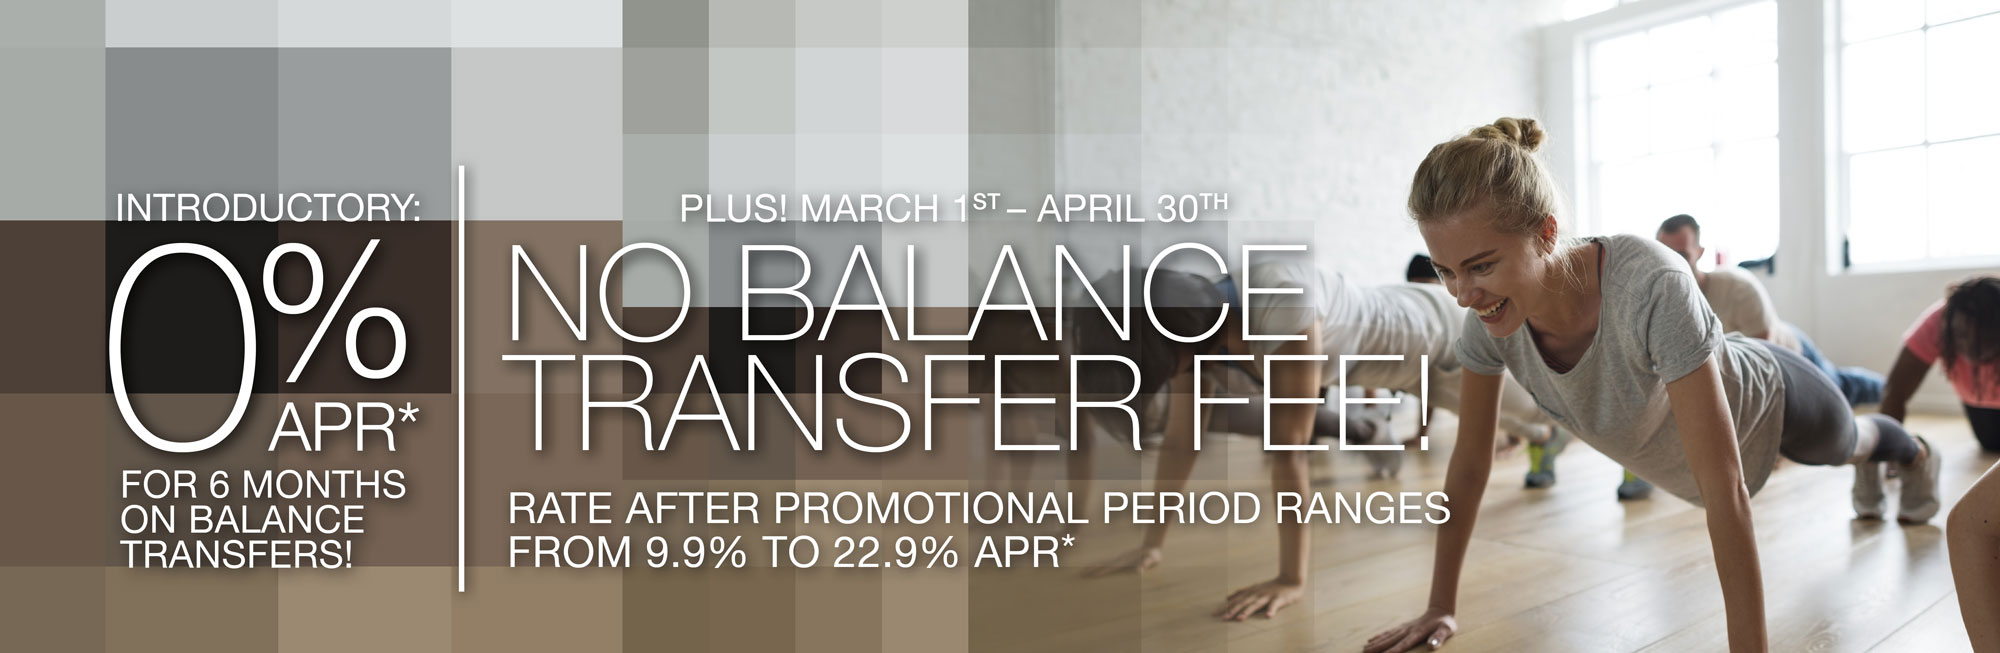 Until April 30th ENJOY No Balance Transfer Fee plus an Introductory Enjoy 0% Apr* For 6 Months On Balance Transfers*! Rate After Promotional Period Range From 9.9% To 22.9% Apr*.